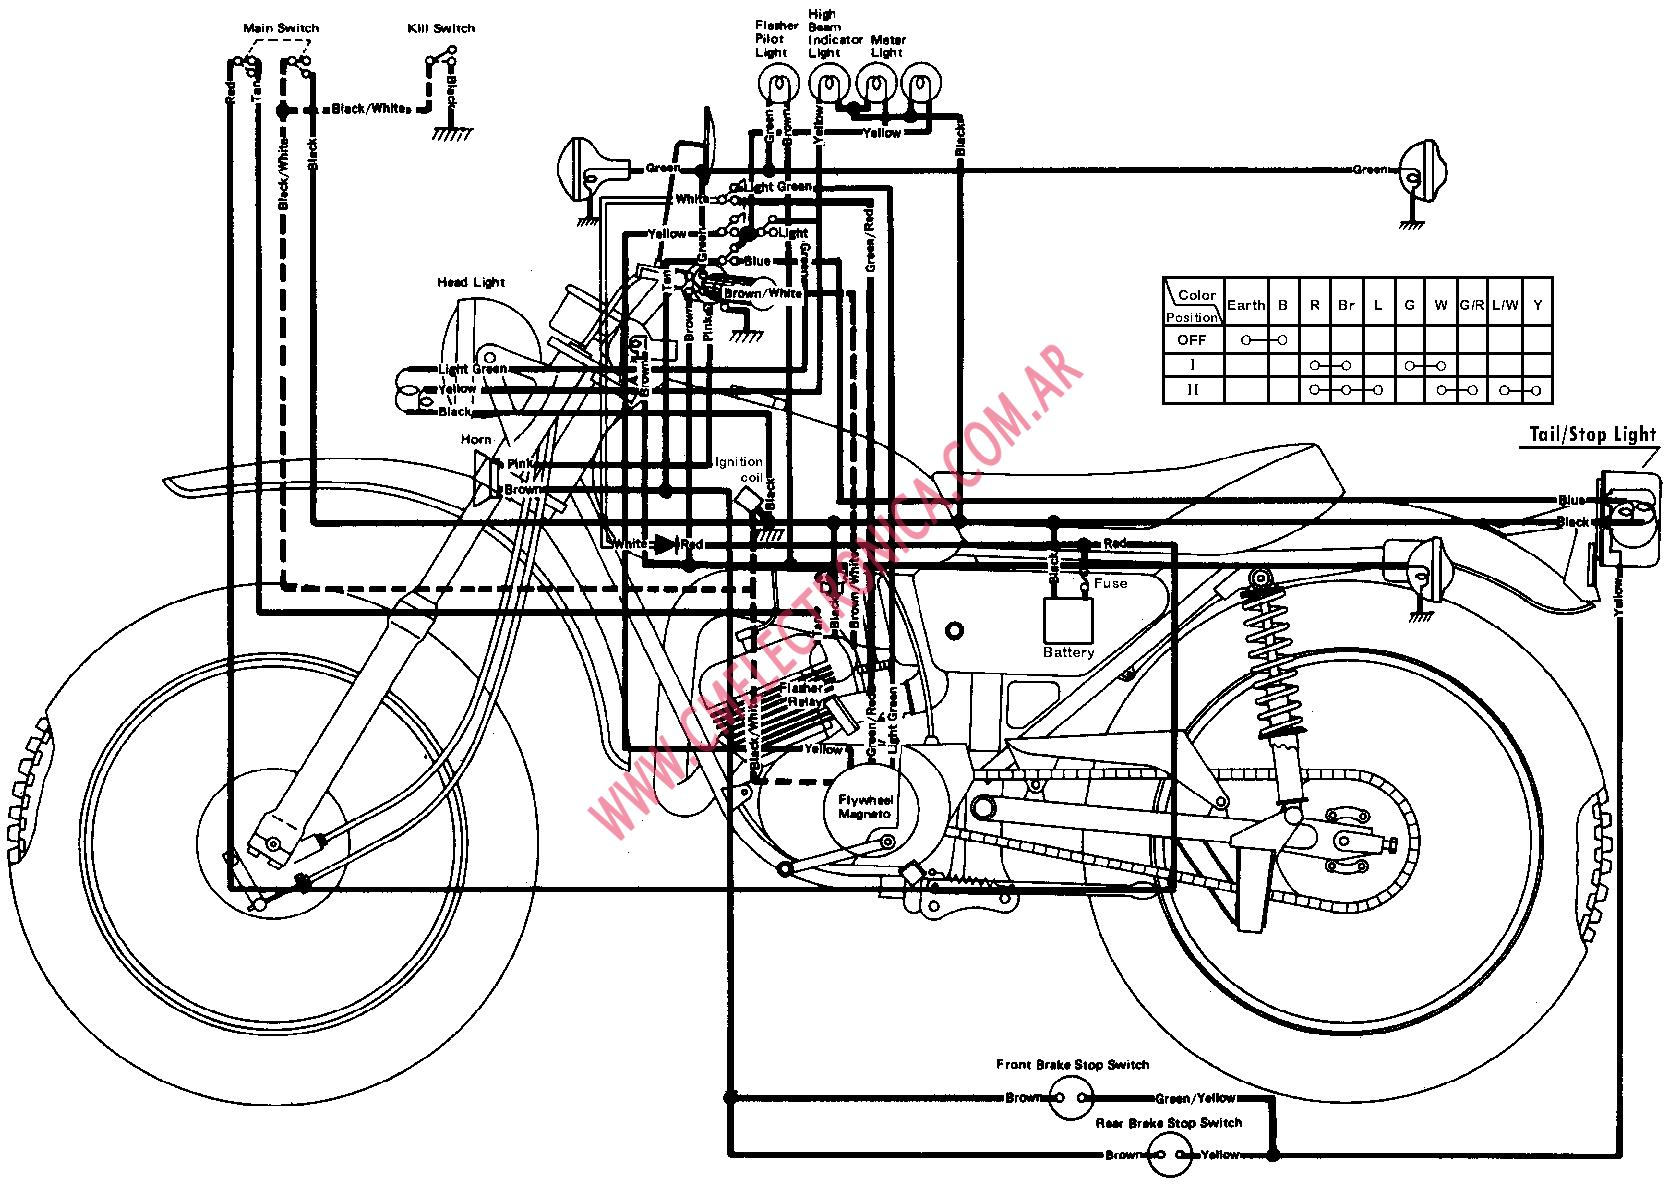 yamaha dt250_dt250a_dia yamaha dt 250 wiring diagram yamaha dt250 wiring diagram at webbmarketing.co